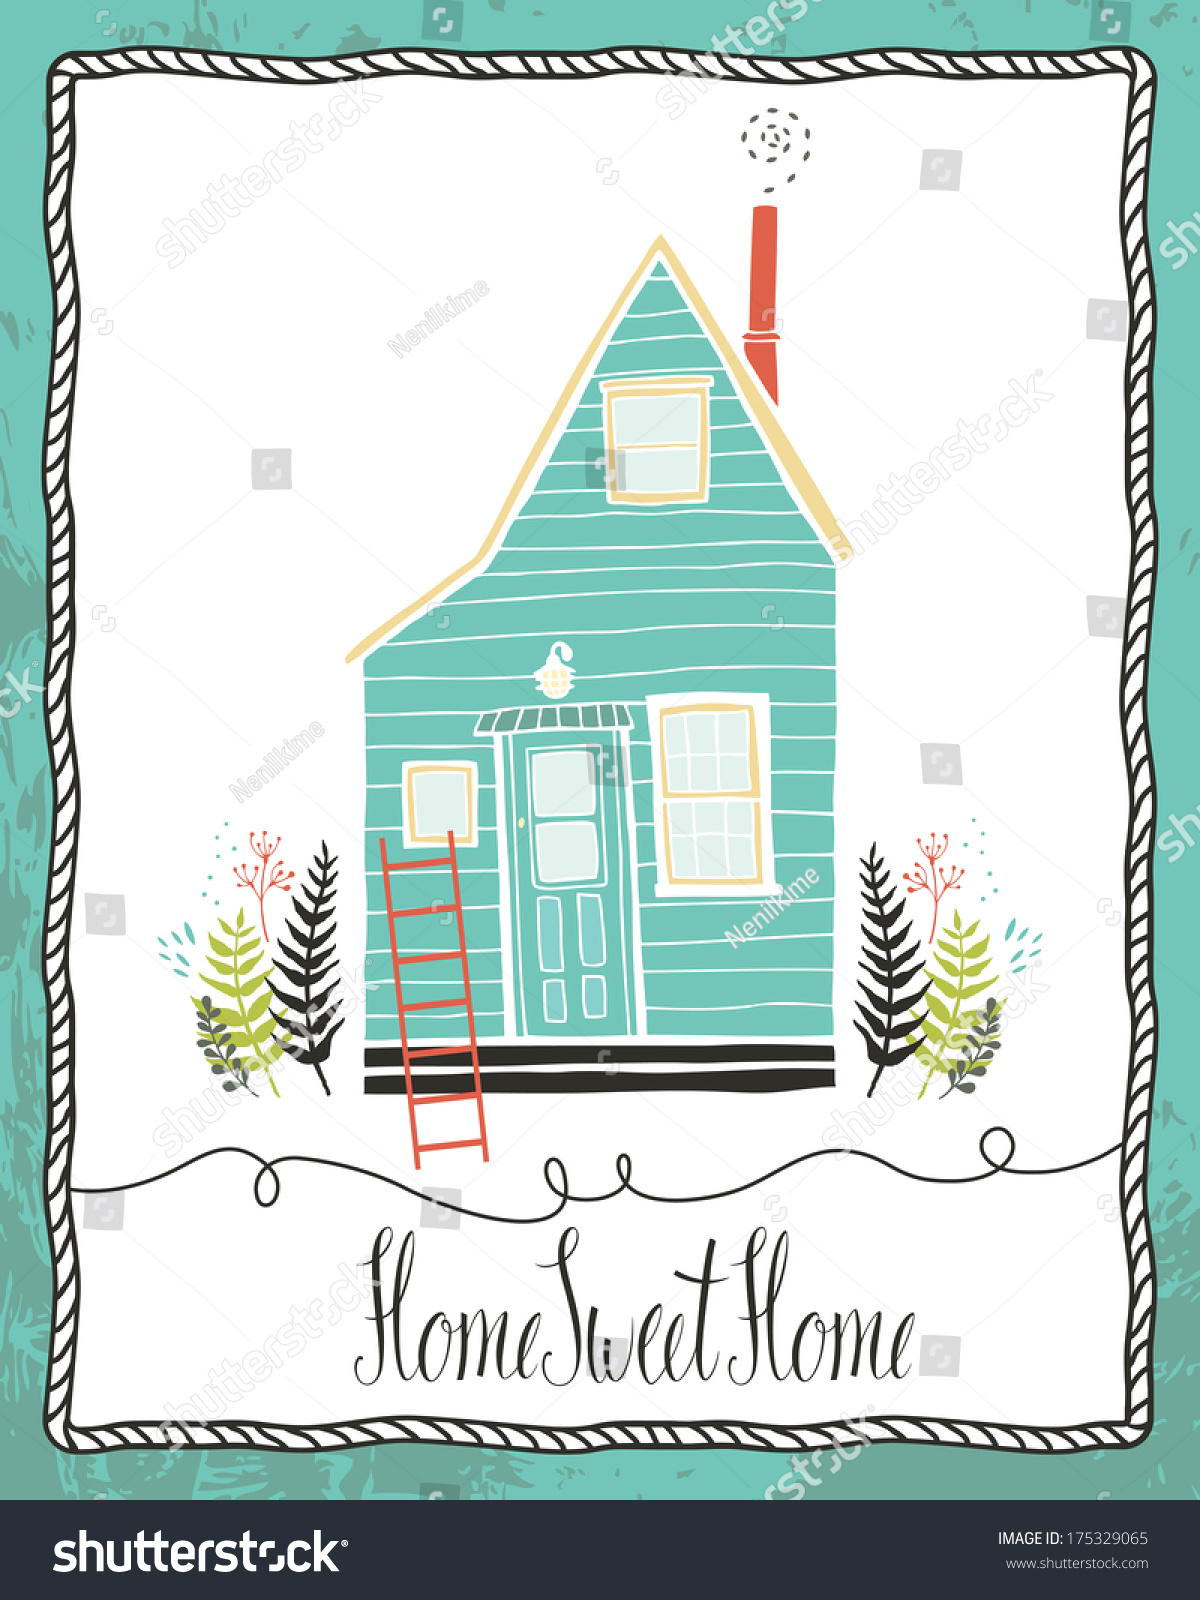 Home sweet home design cardHome Sweet Home Design Card Stock Vector 175329065   Shutterstock. Home Design Card. Home Design Ideas